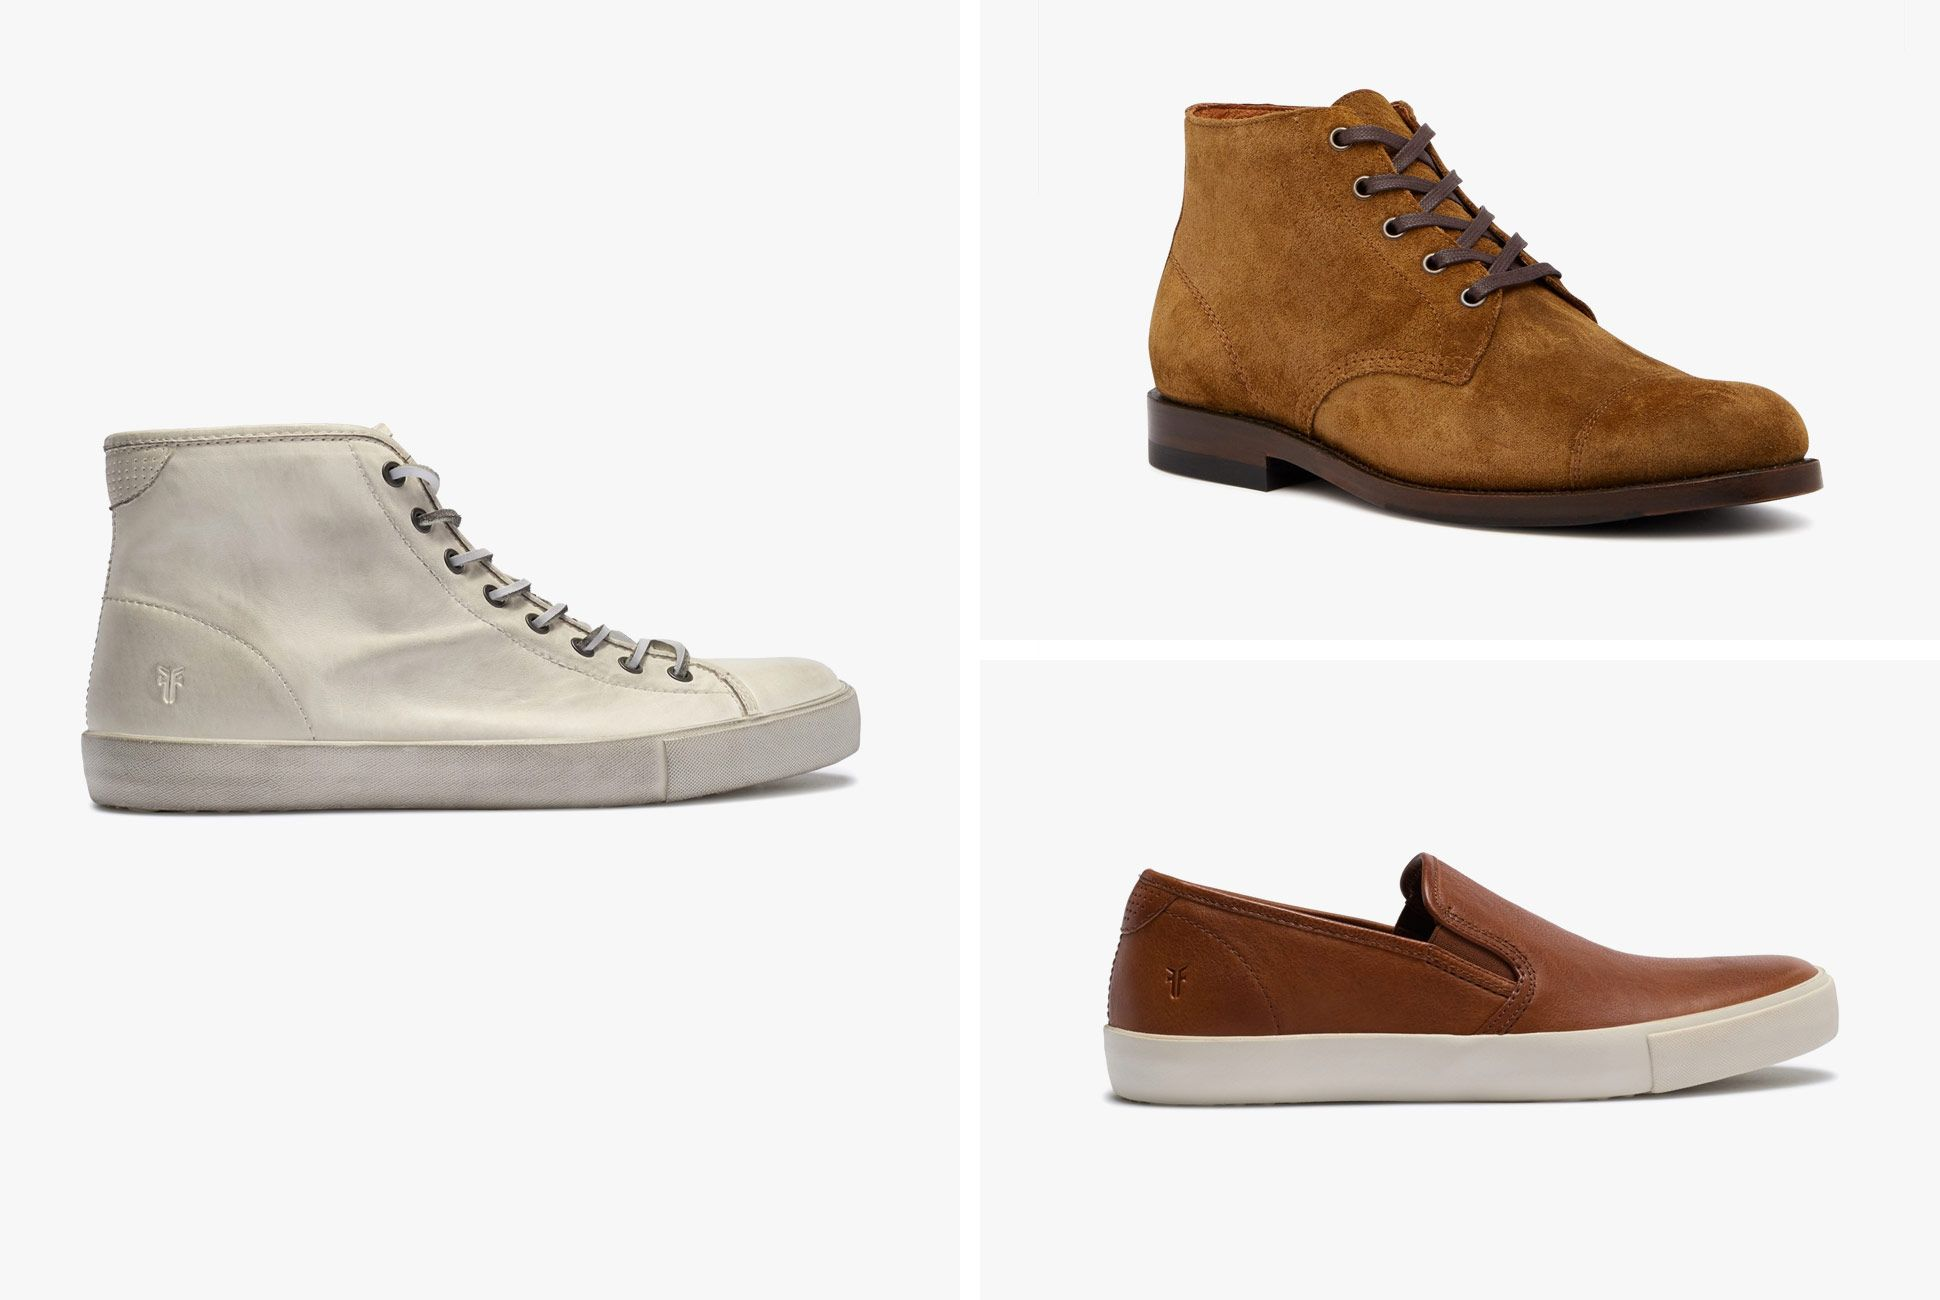 These High-End Shoes and Boots Are at a